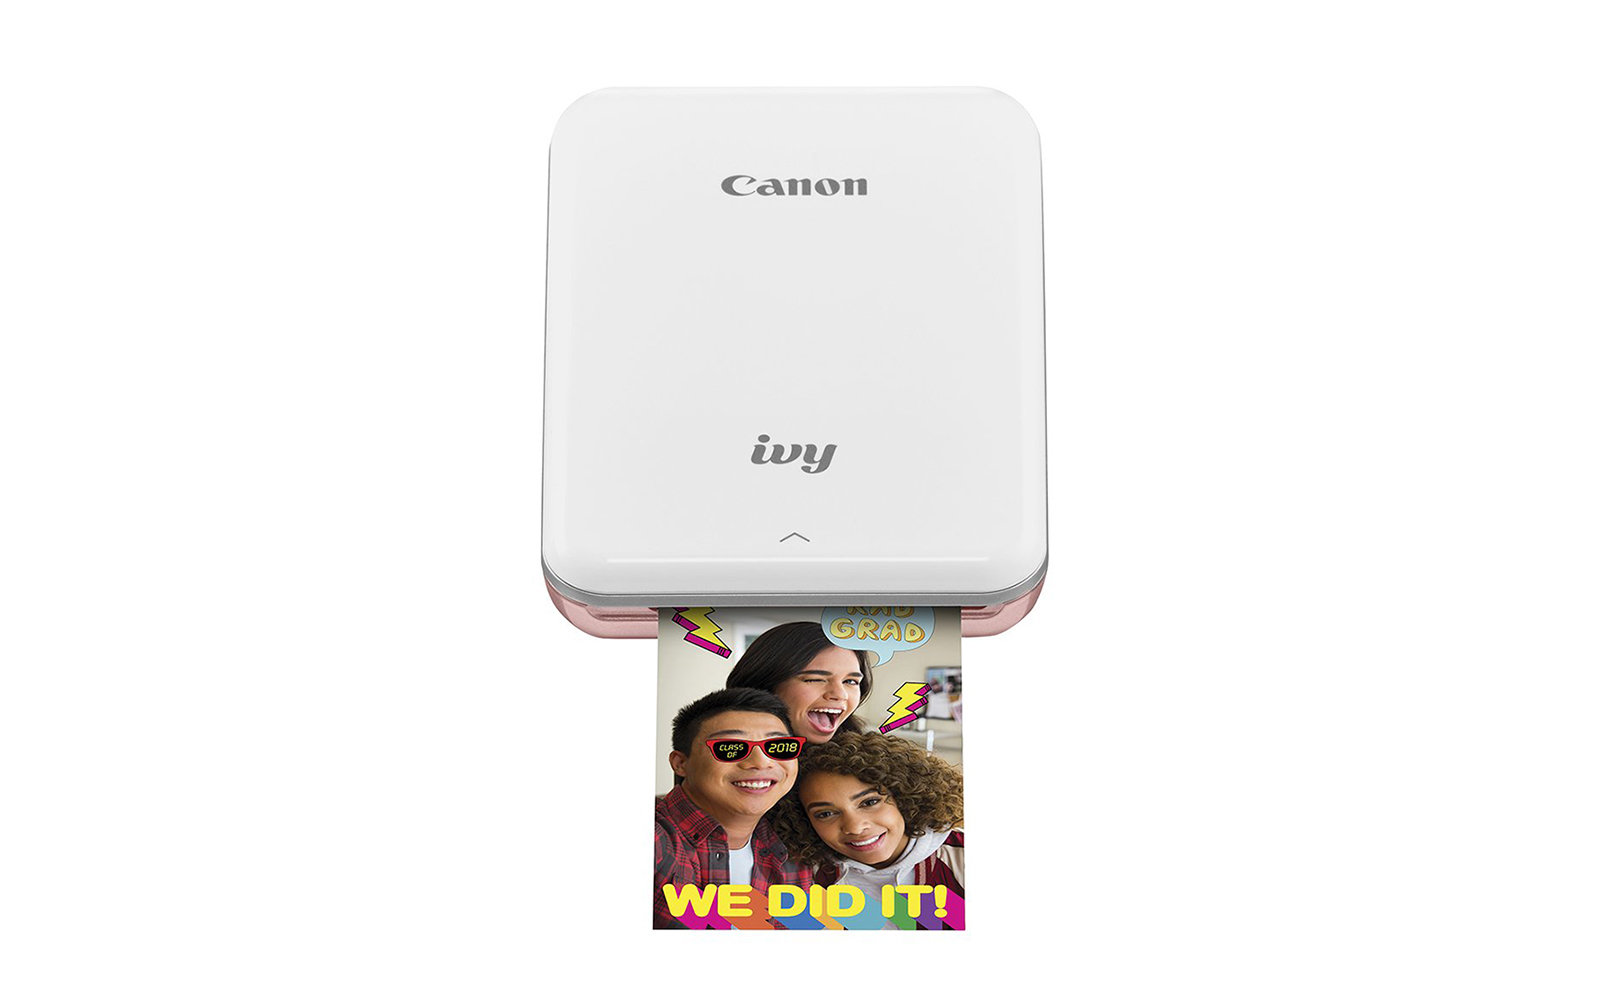 Portable Printer With Photo Editing: Canon Ivy